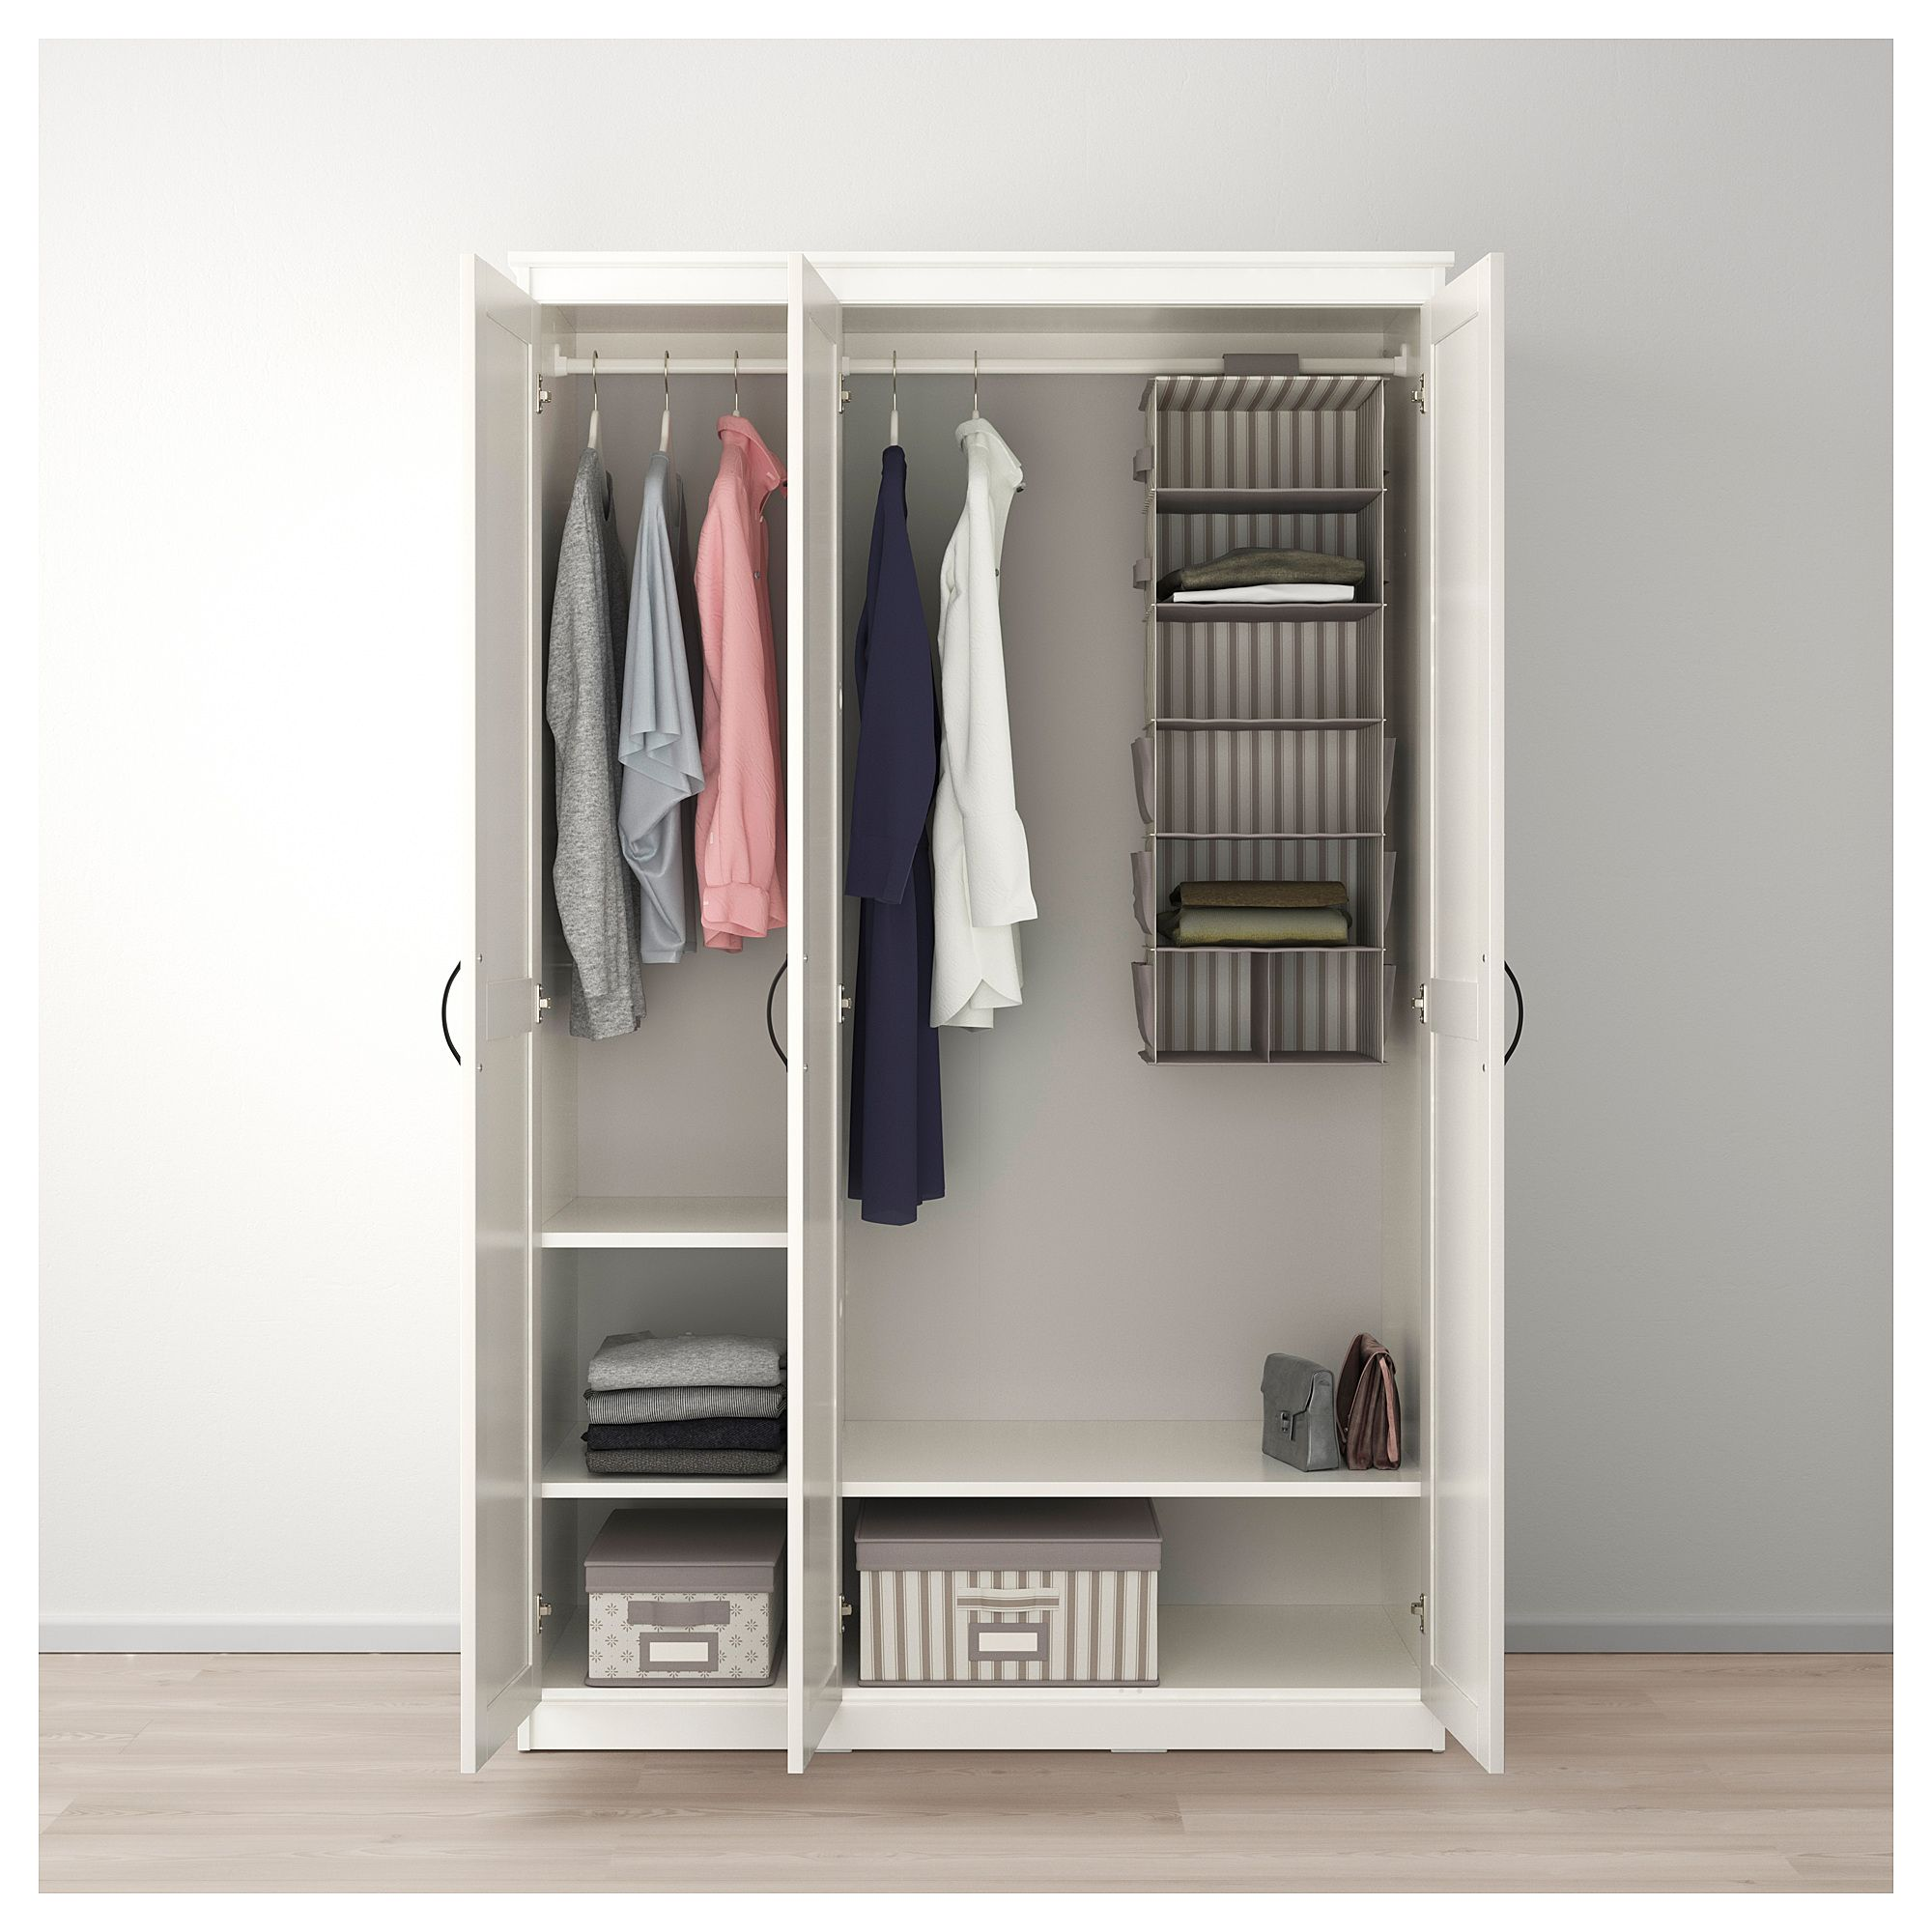 Ikea songesand wardrobe white closet stuff ikea for Librerie angolari ikea